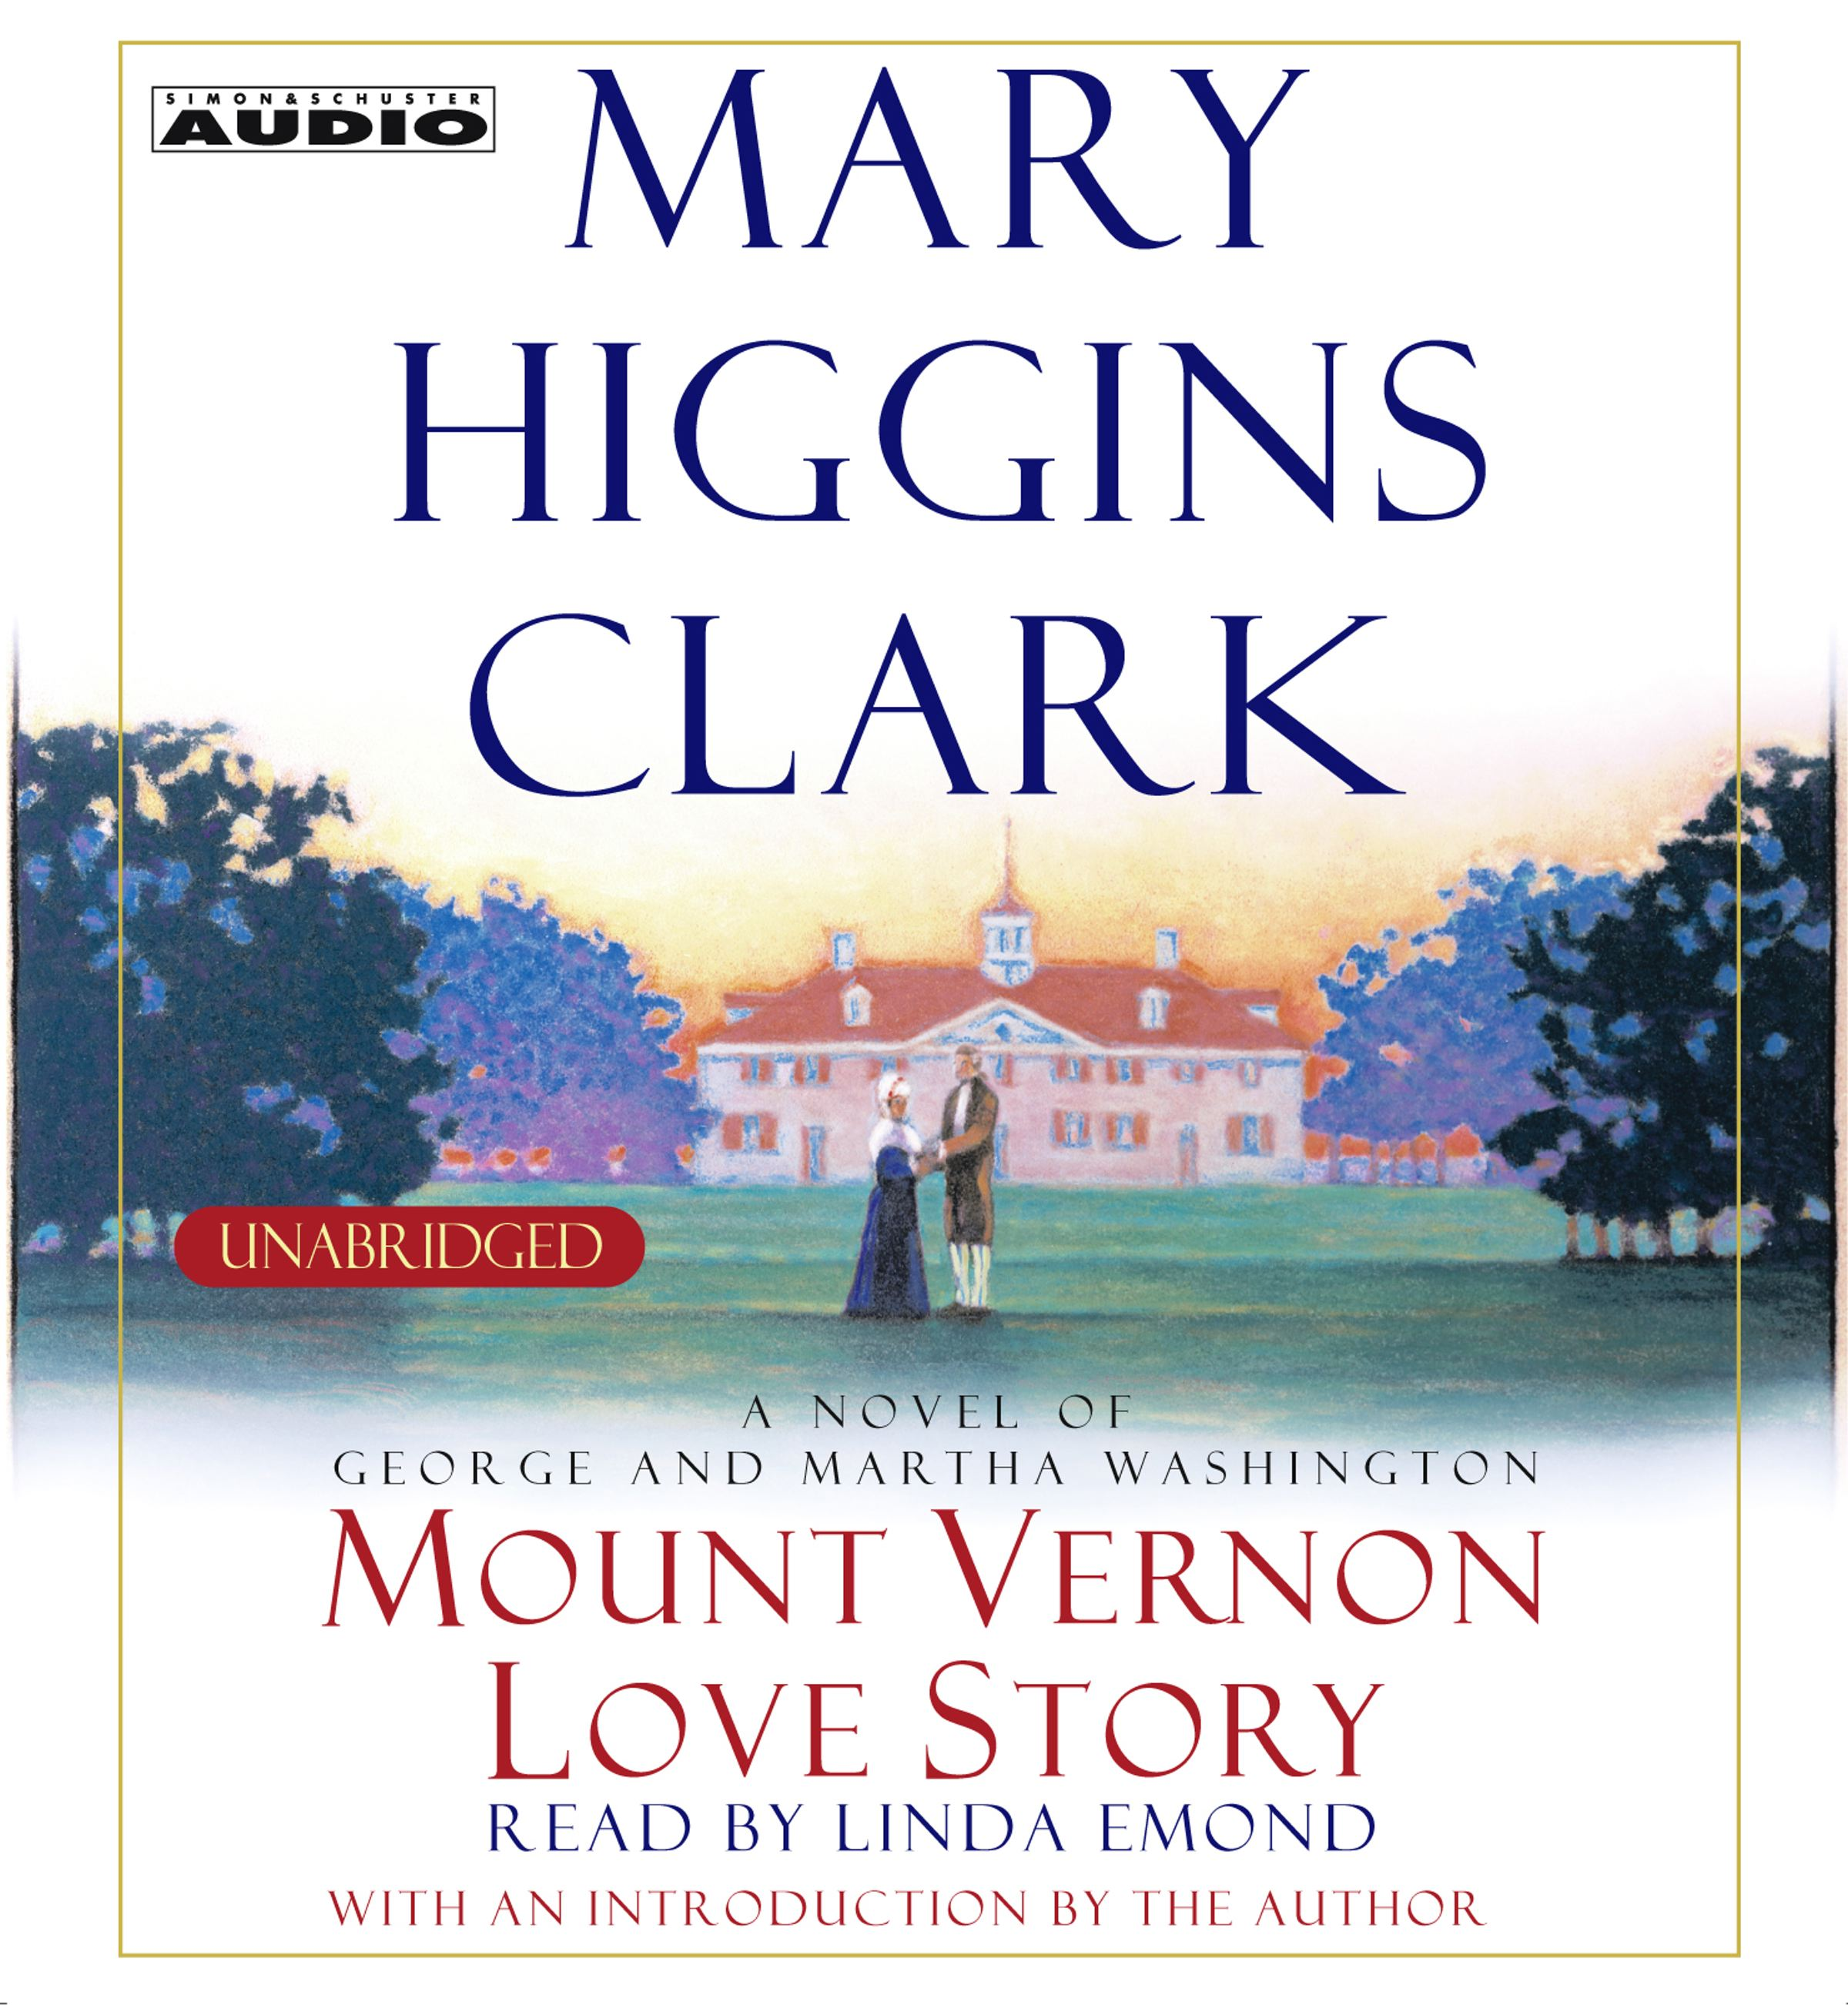 Mount vernon love story 9780743582728 hr